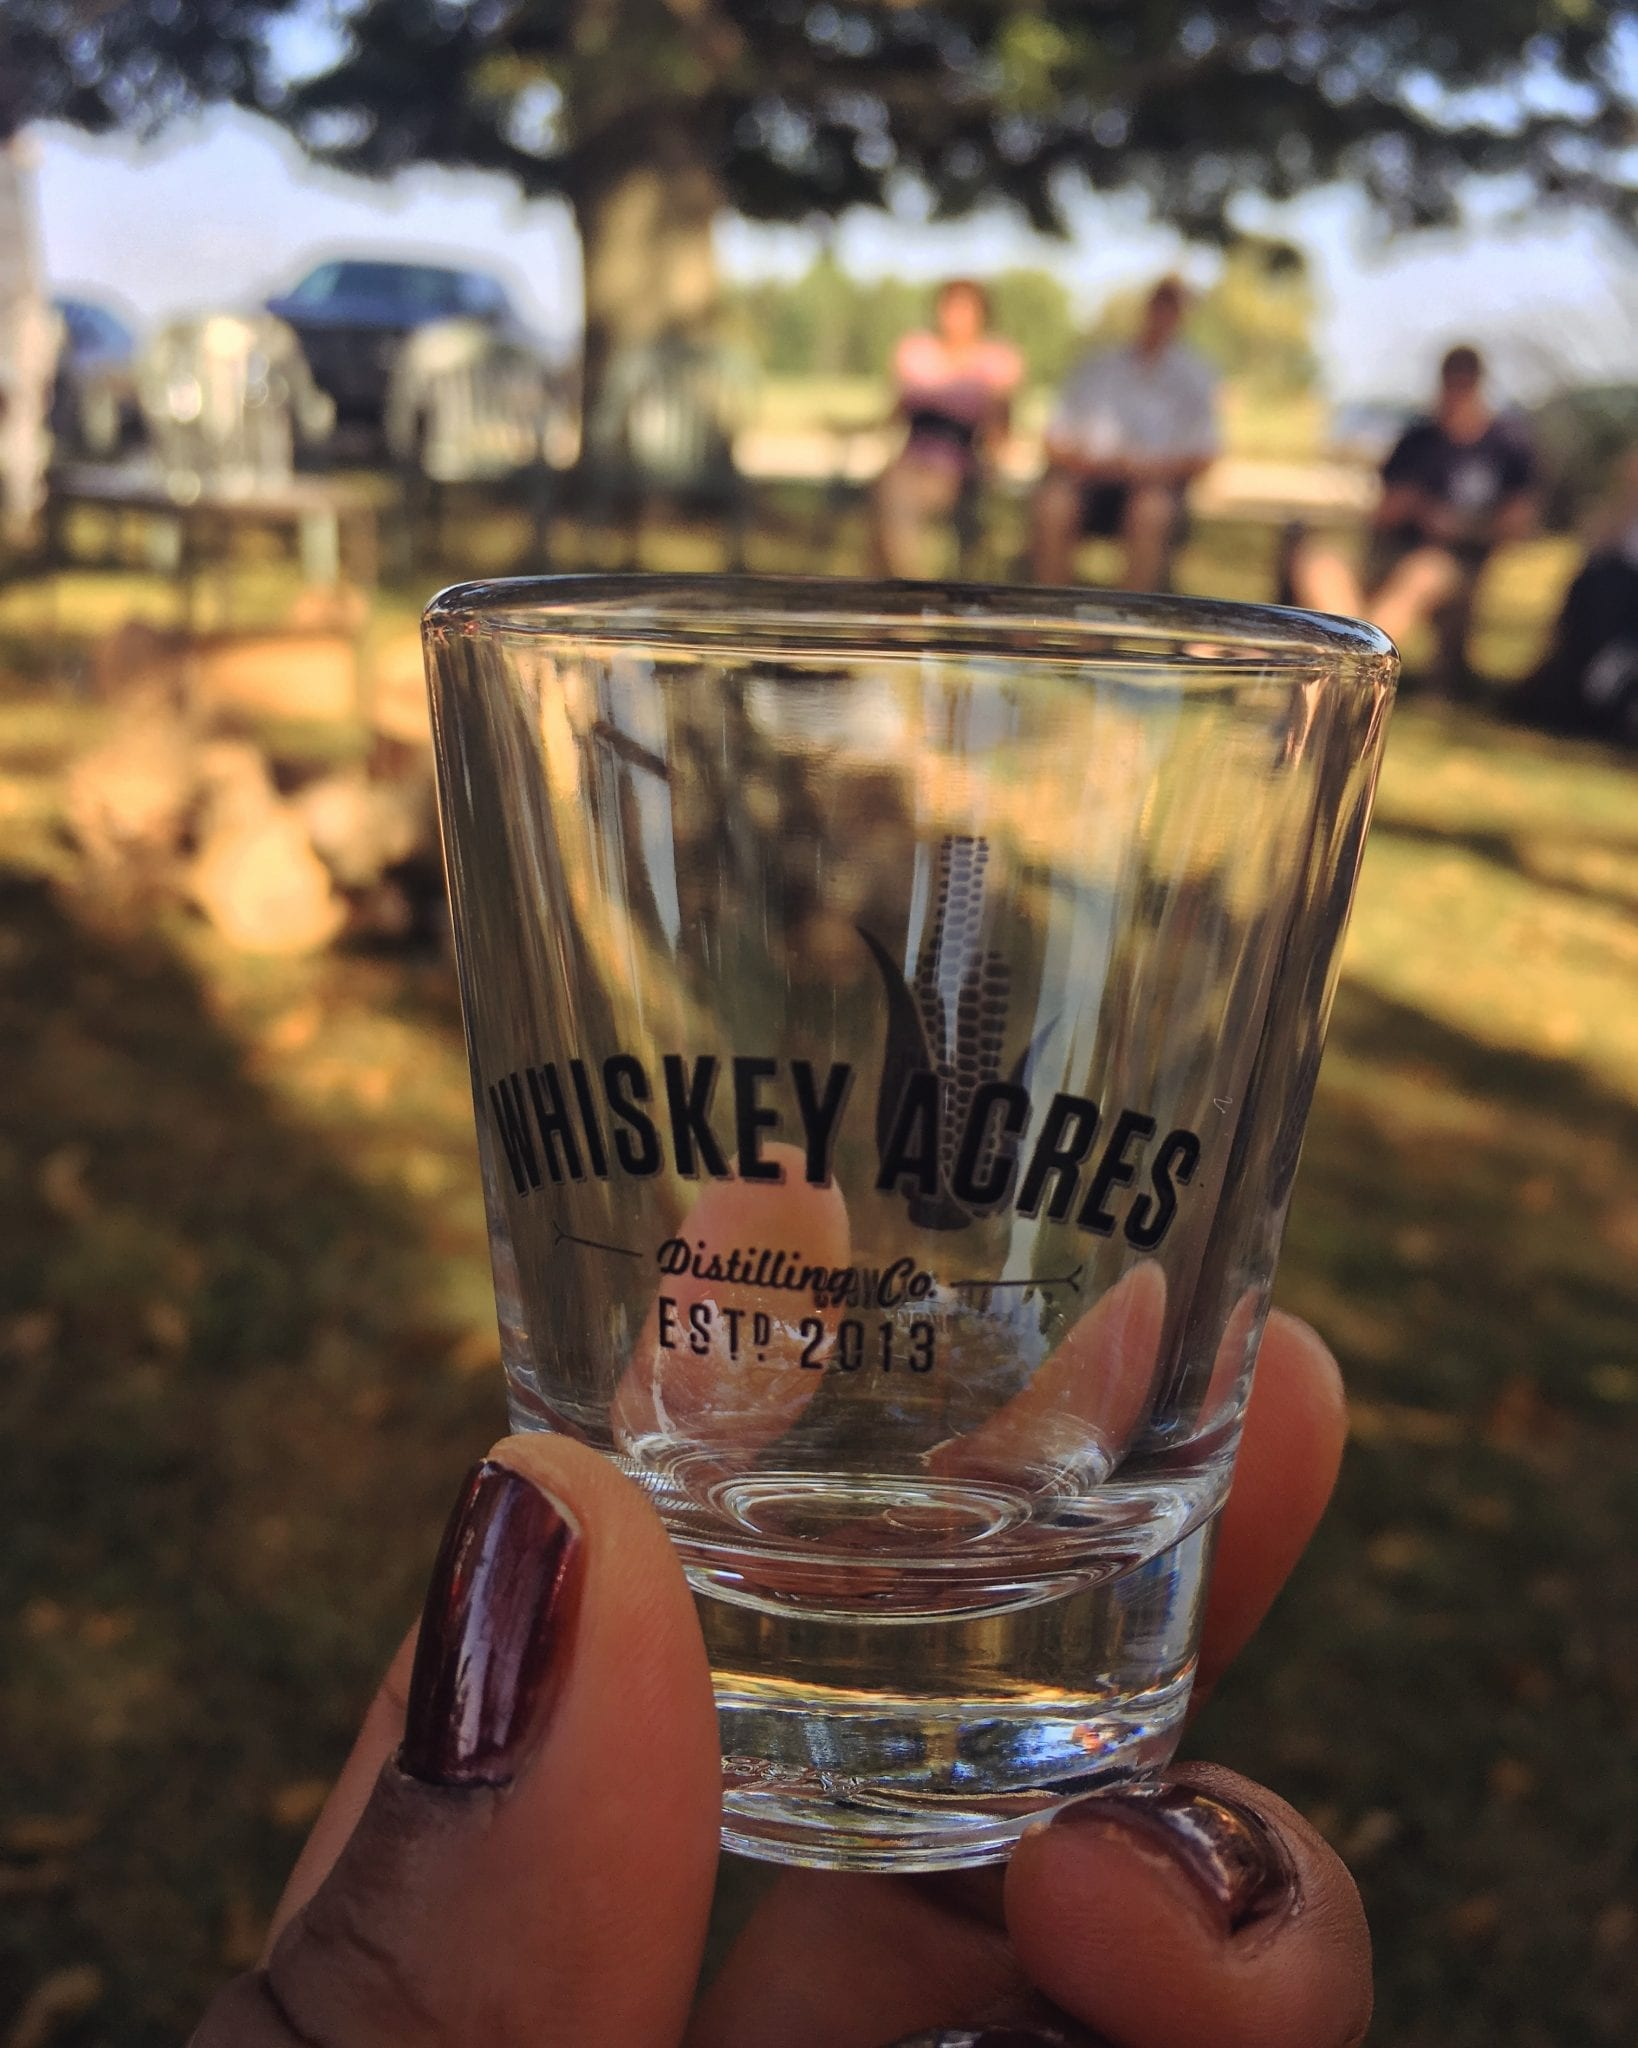 an empty whiskey acres shot glass at the distillery in Dekalb Indiana